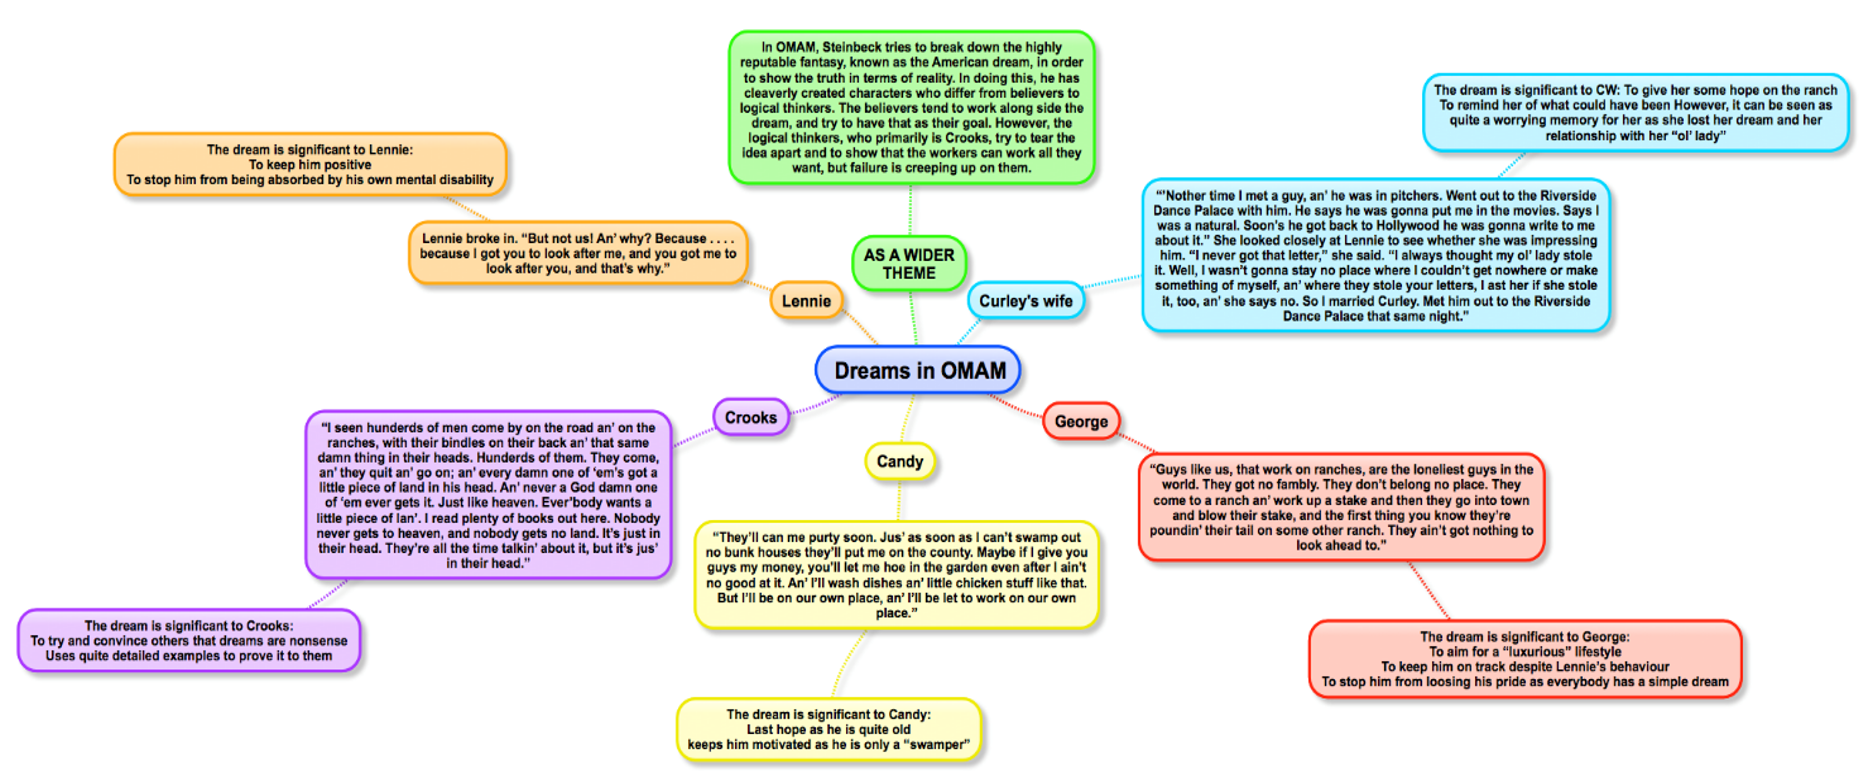 of mice and men miss ryan s gcse english media page 2 omam dreams amardeep